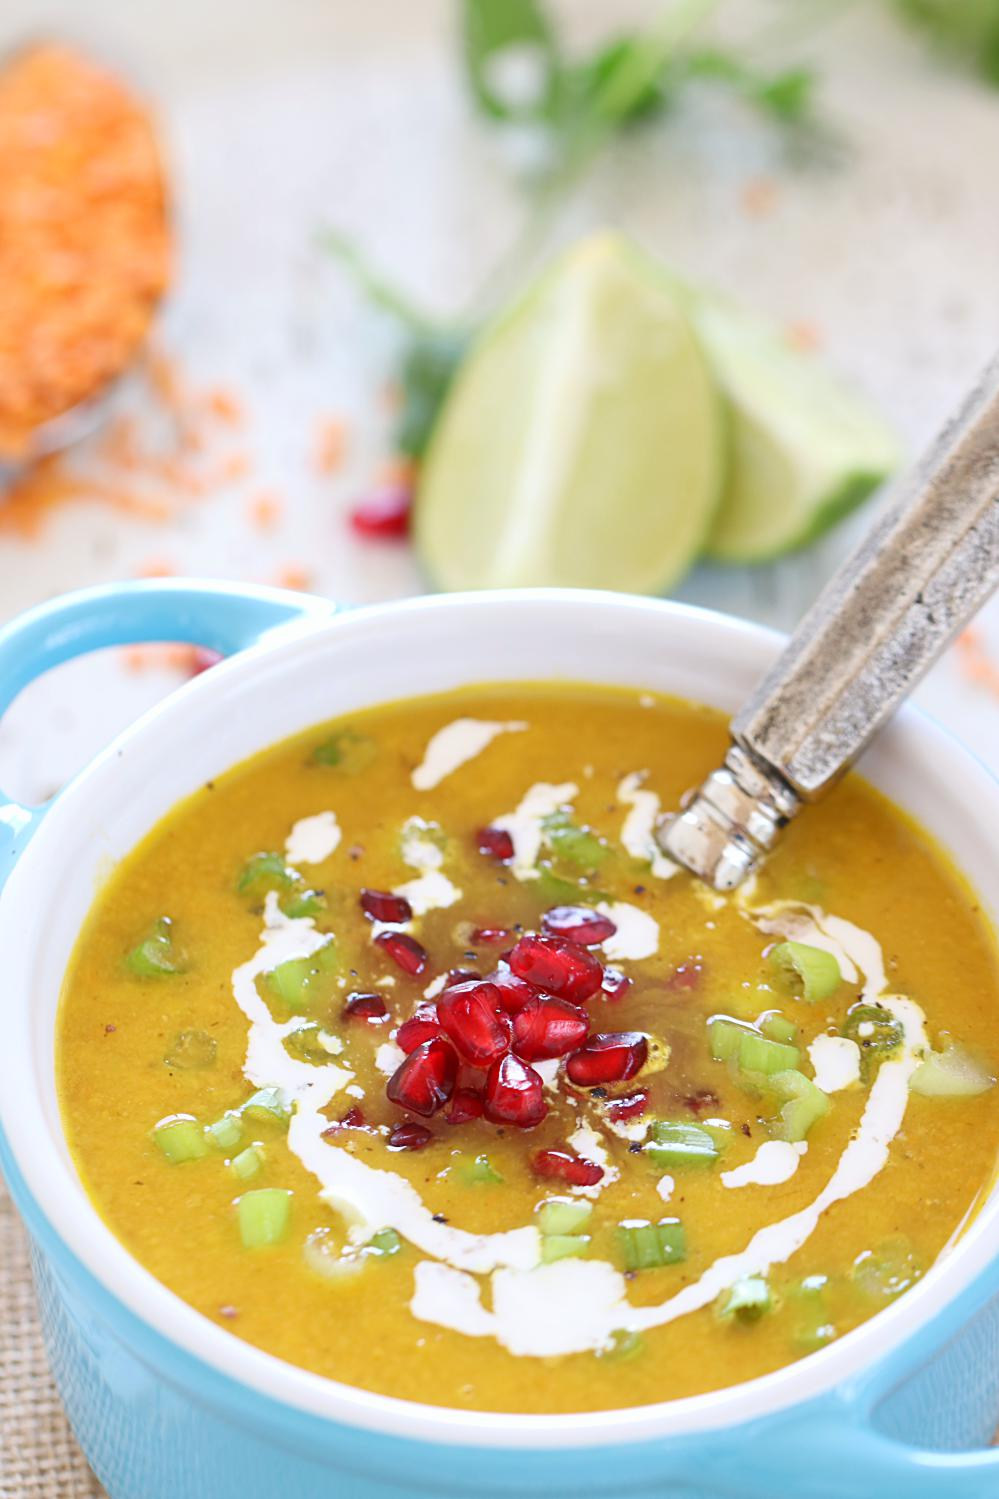 Roasted Butternut Squash and Lentil Soup - Ruchiskitchen